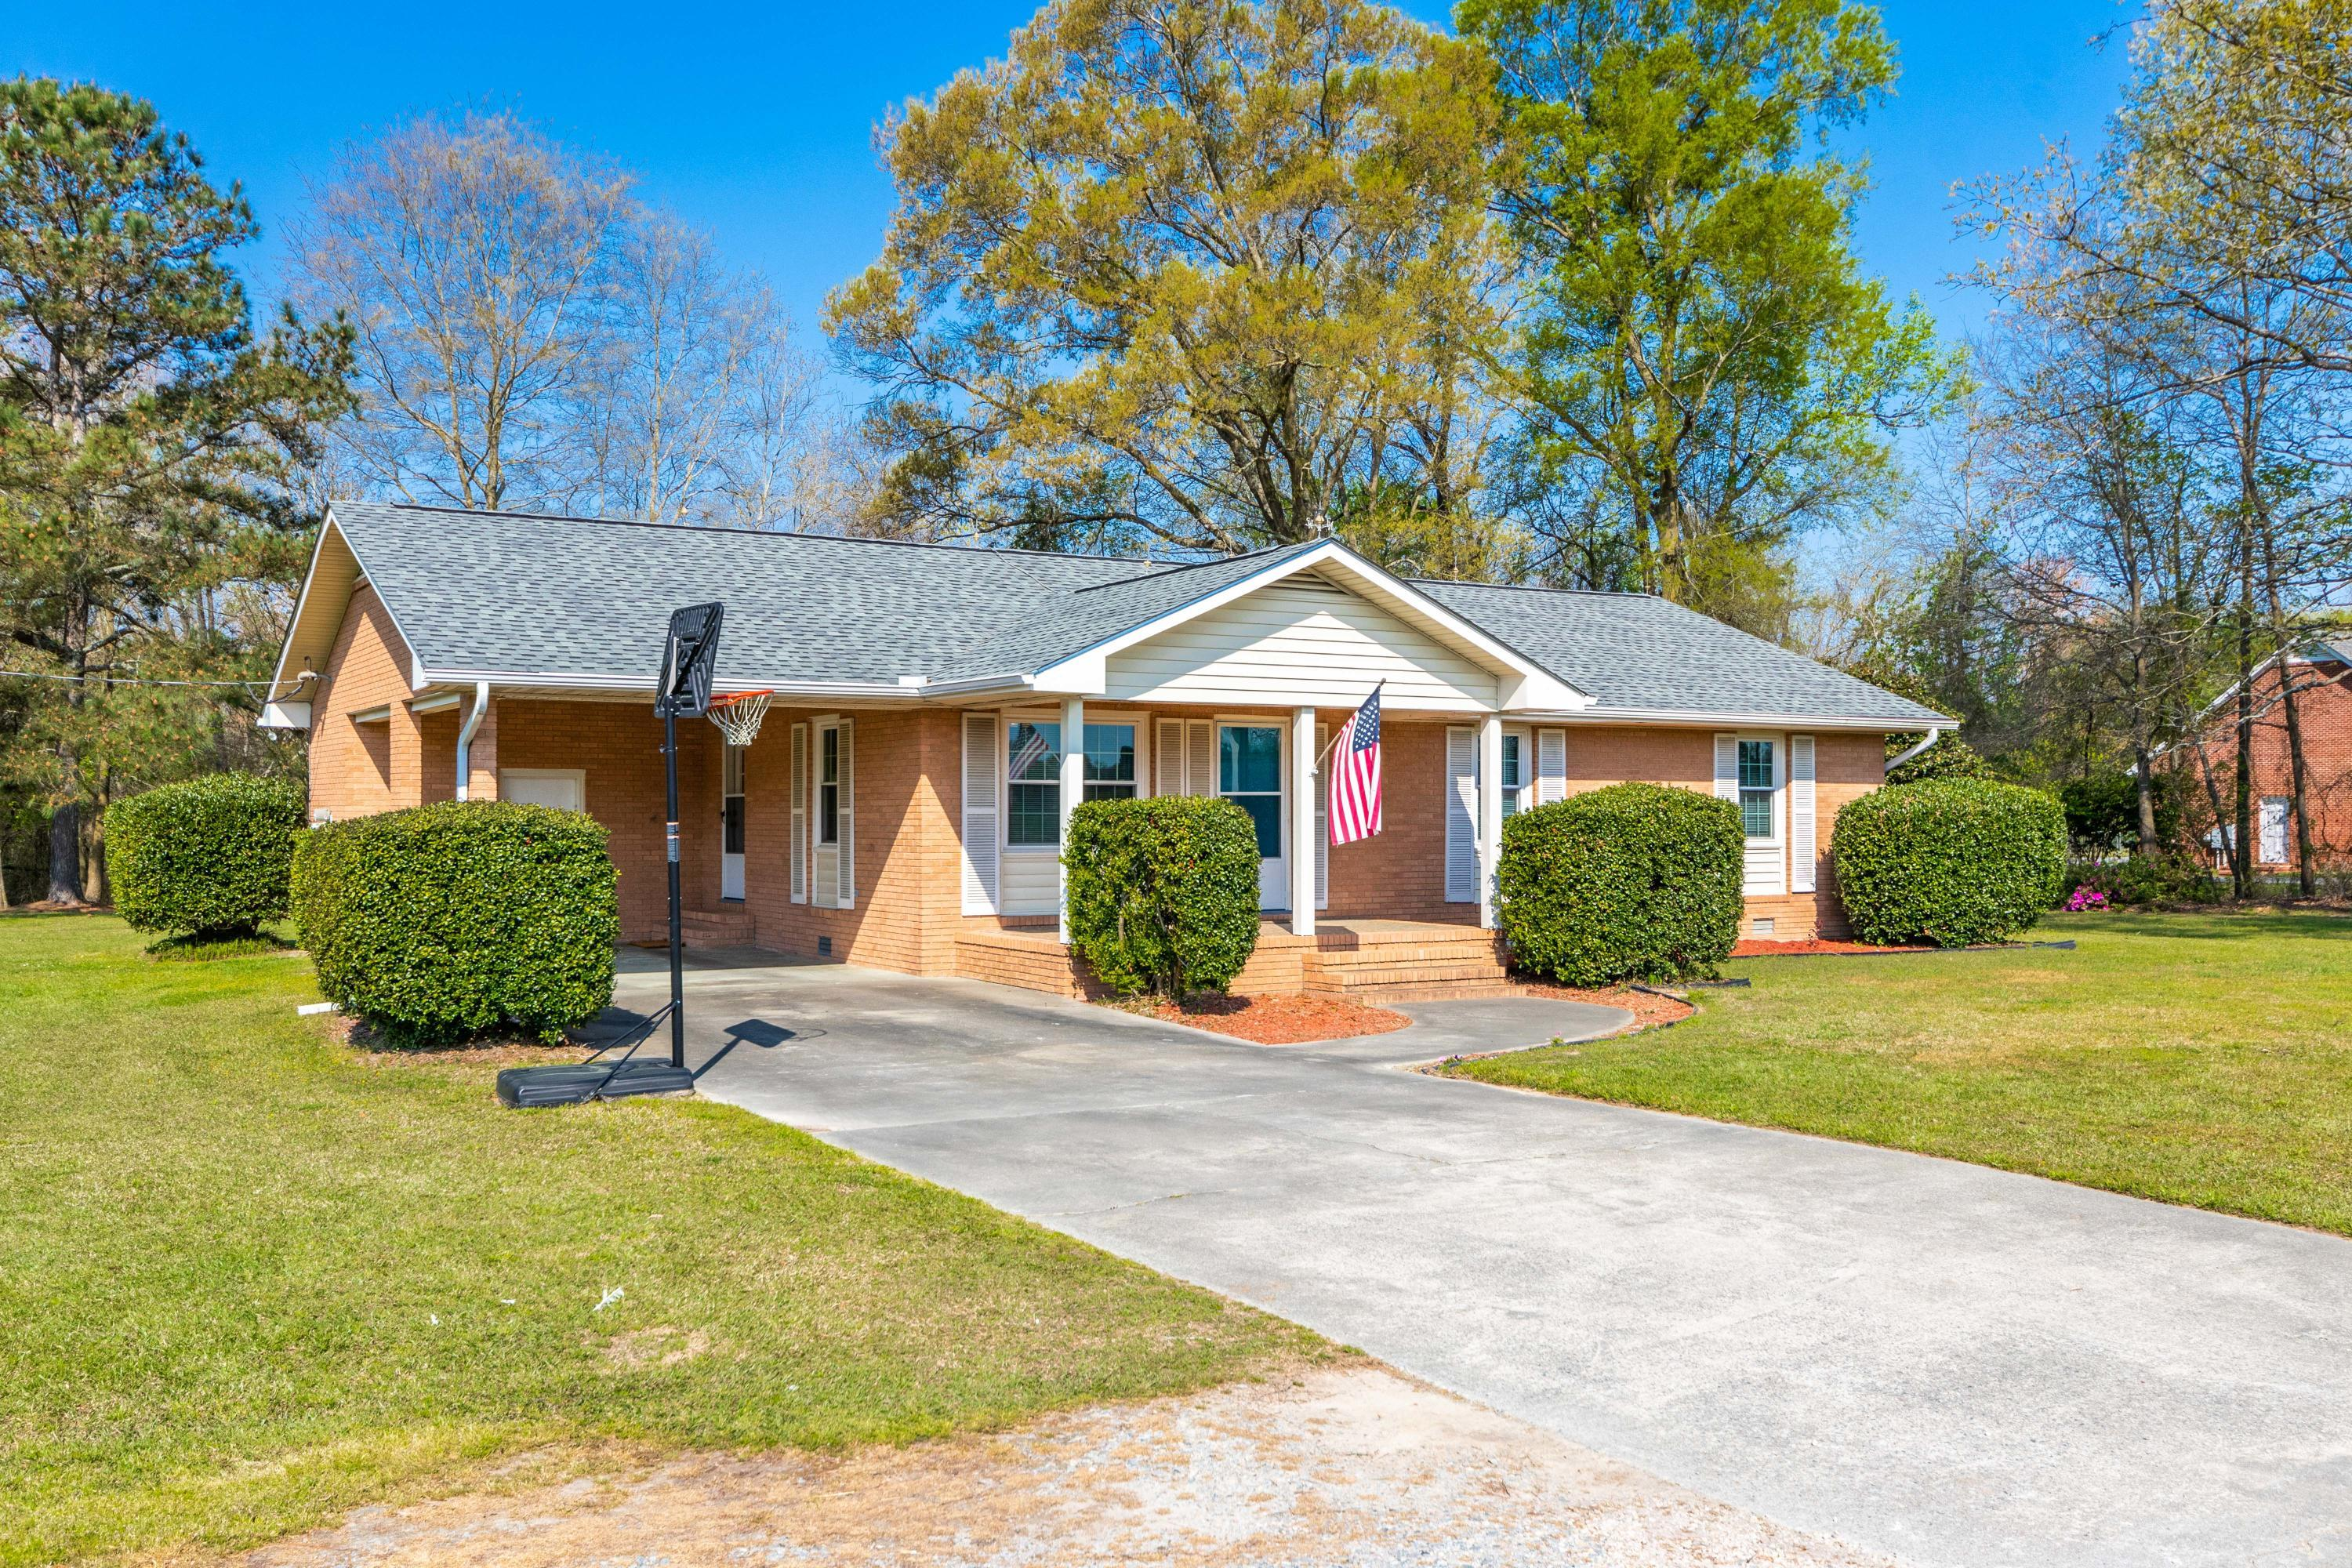 1948 NC Highway 111 S, Goldsboro, North Carolina 27534, 3 Bedrooms Bedrooms, 5 Rooms Rooms,2 BathroomsBathrooms,Single family residence,For sale,NC Highway 111 S,100264425